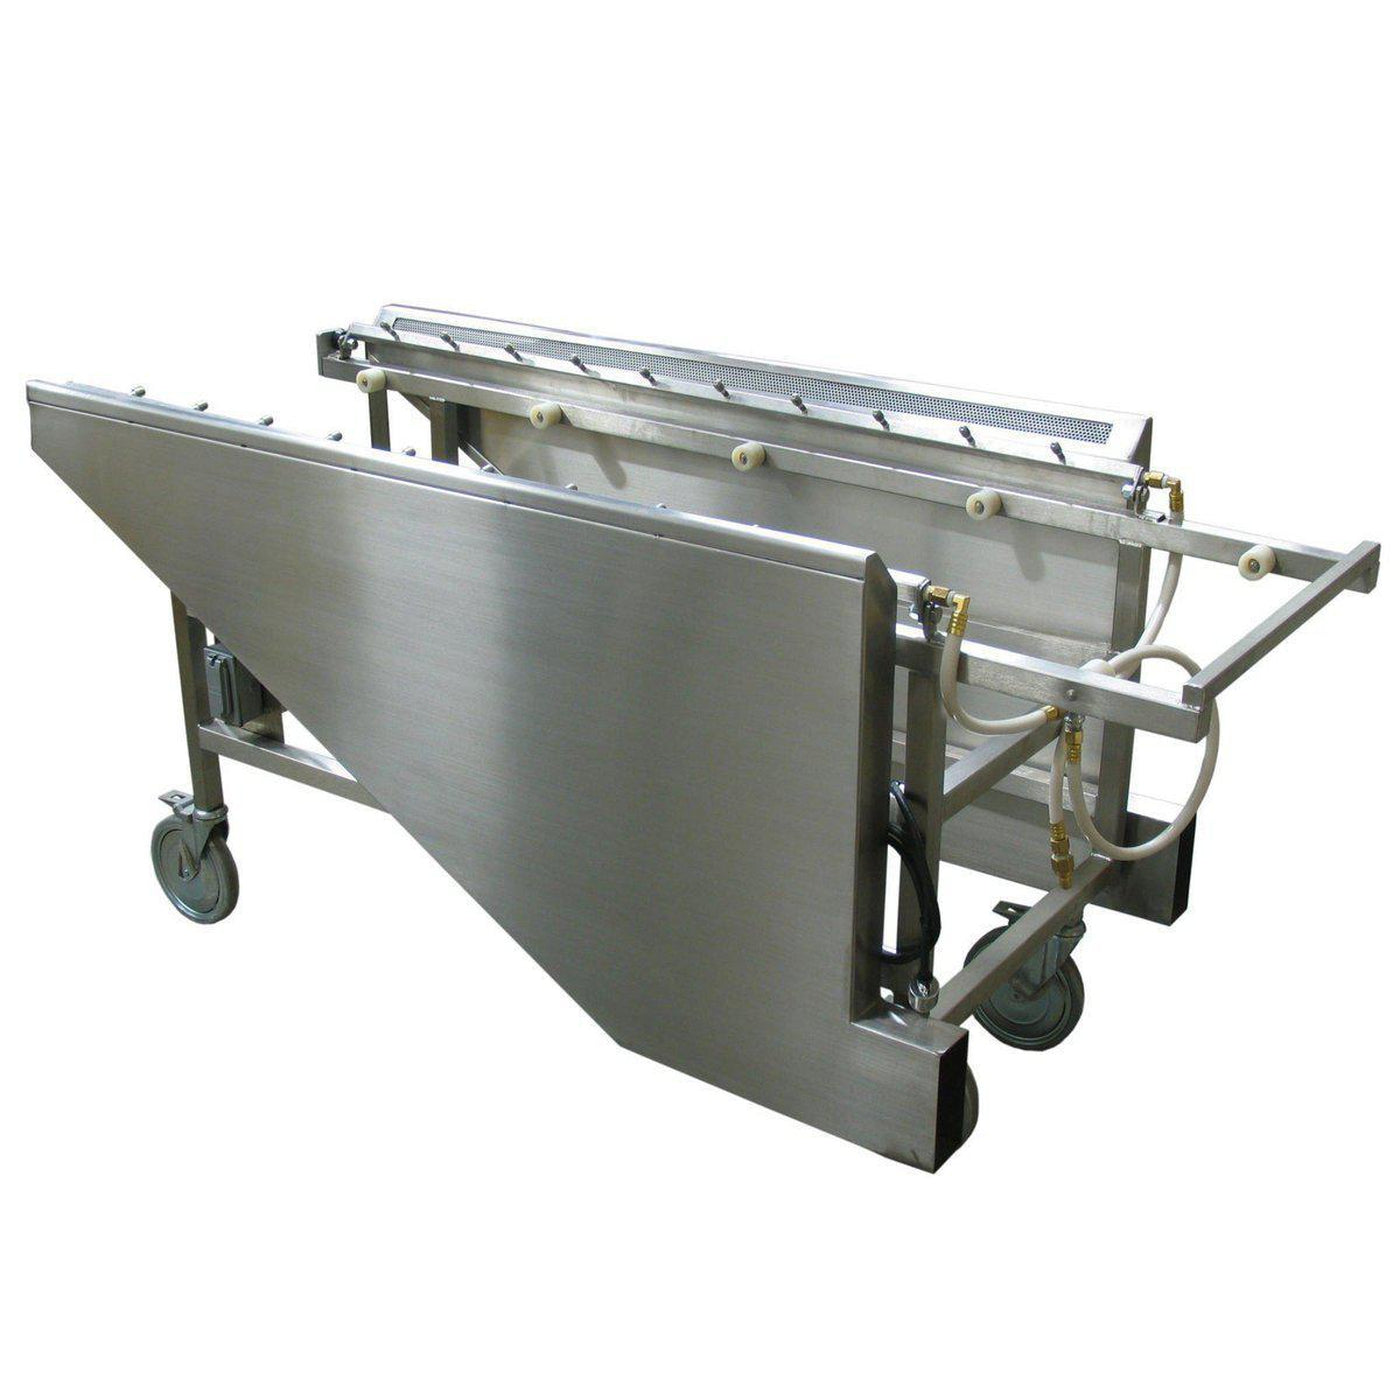 Ventilated Embalming Table-Sink Station-Mortech Manufacturing Company Inc. Quality Stainless Steel Autopsy, Morgue, Funeral Home, Necropsy, Veterinary / Anatomy, Dissection Equipment and Accessories